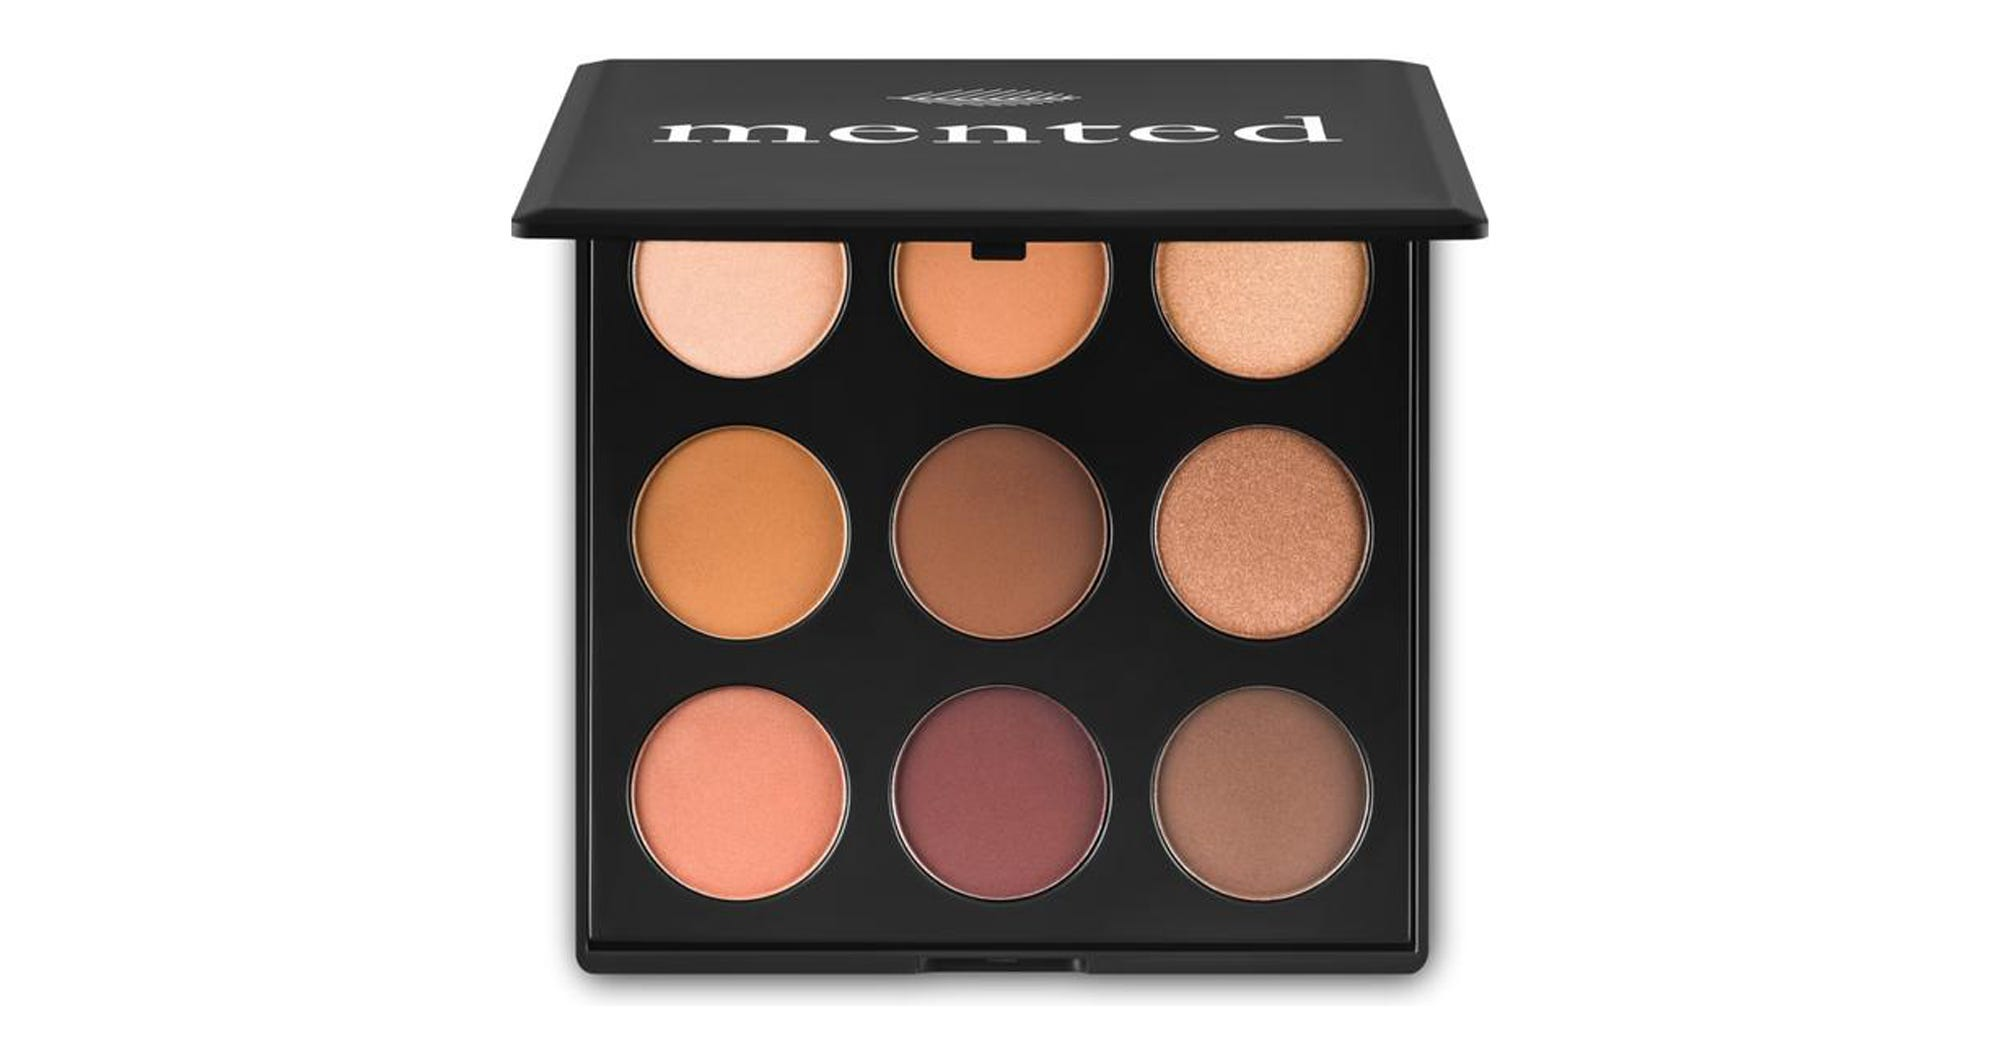 Mented Cosmetics' First Eyeshadow Palette Keeps Selling Out